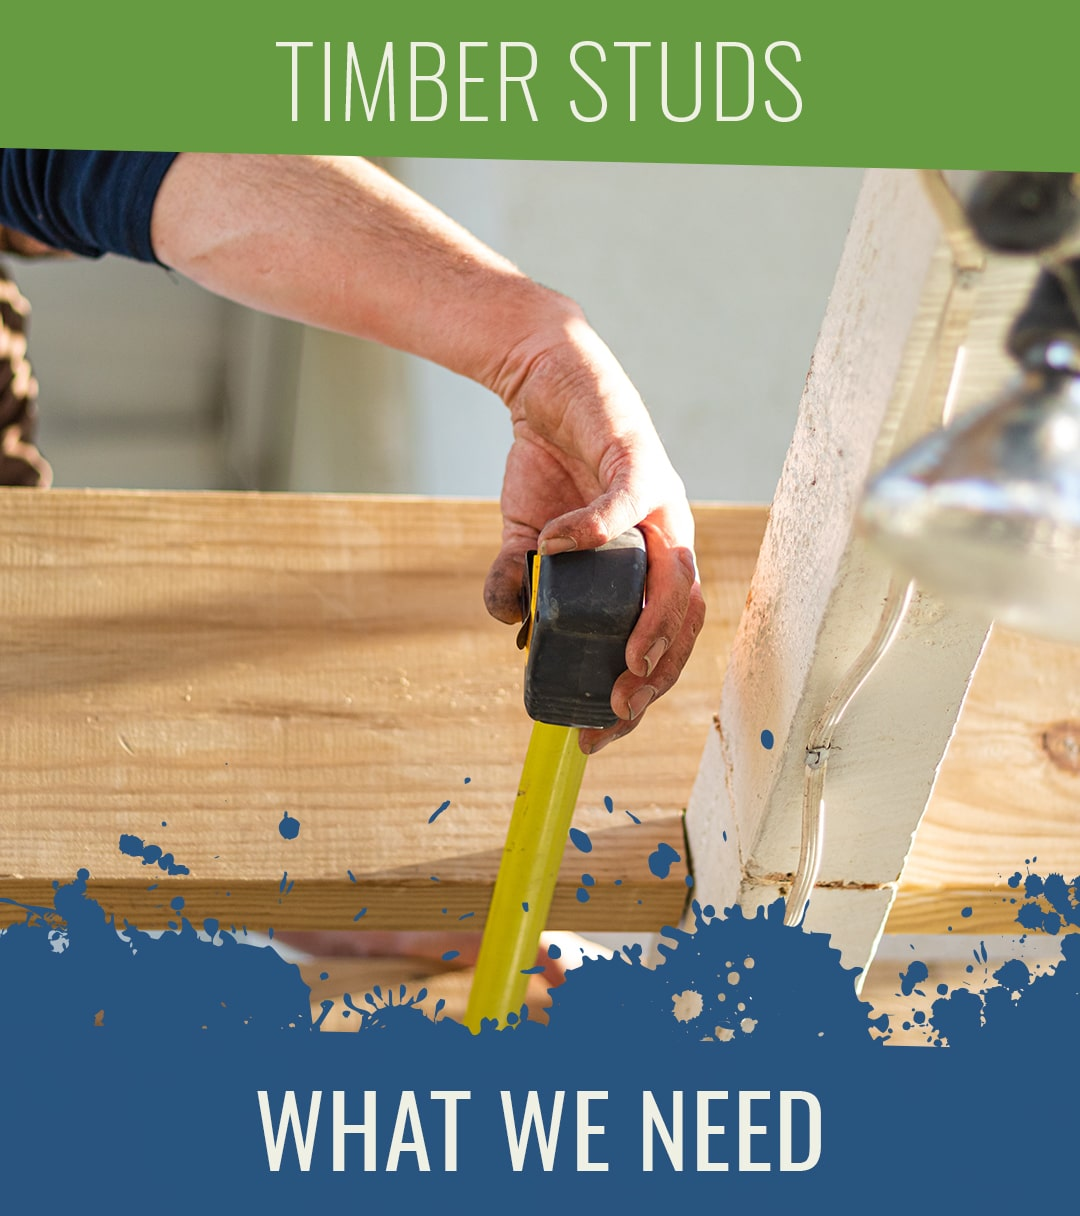 Man measuring a timber stud with a measuring tape